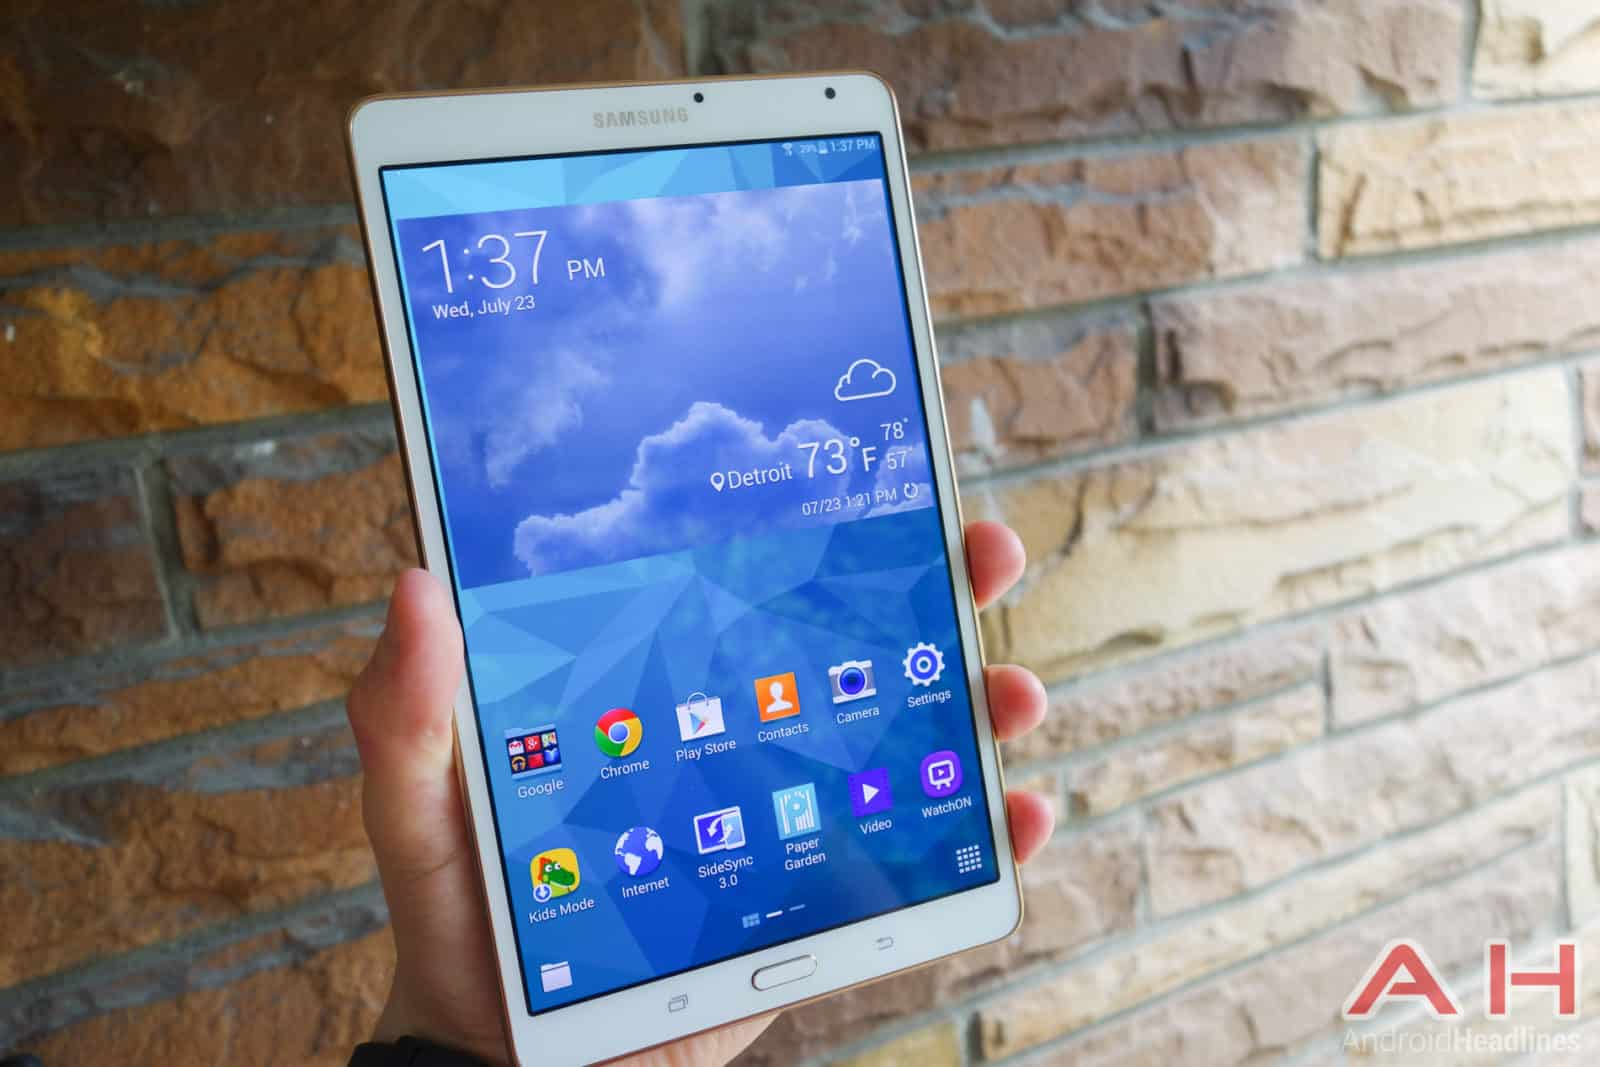 Samsung-Galaxy-Tab-S-Review-AH-10